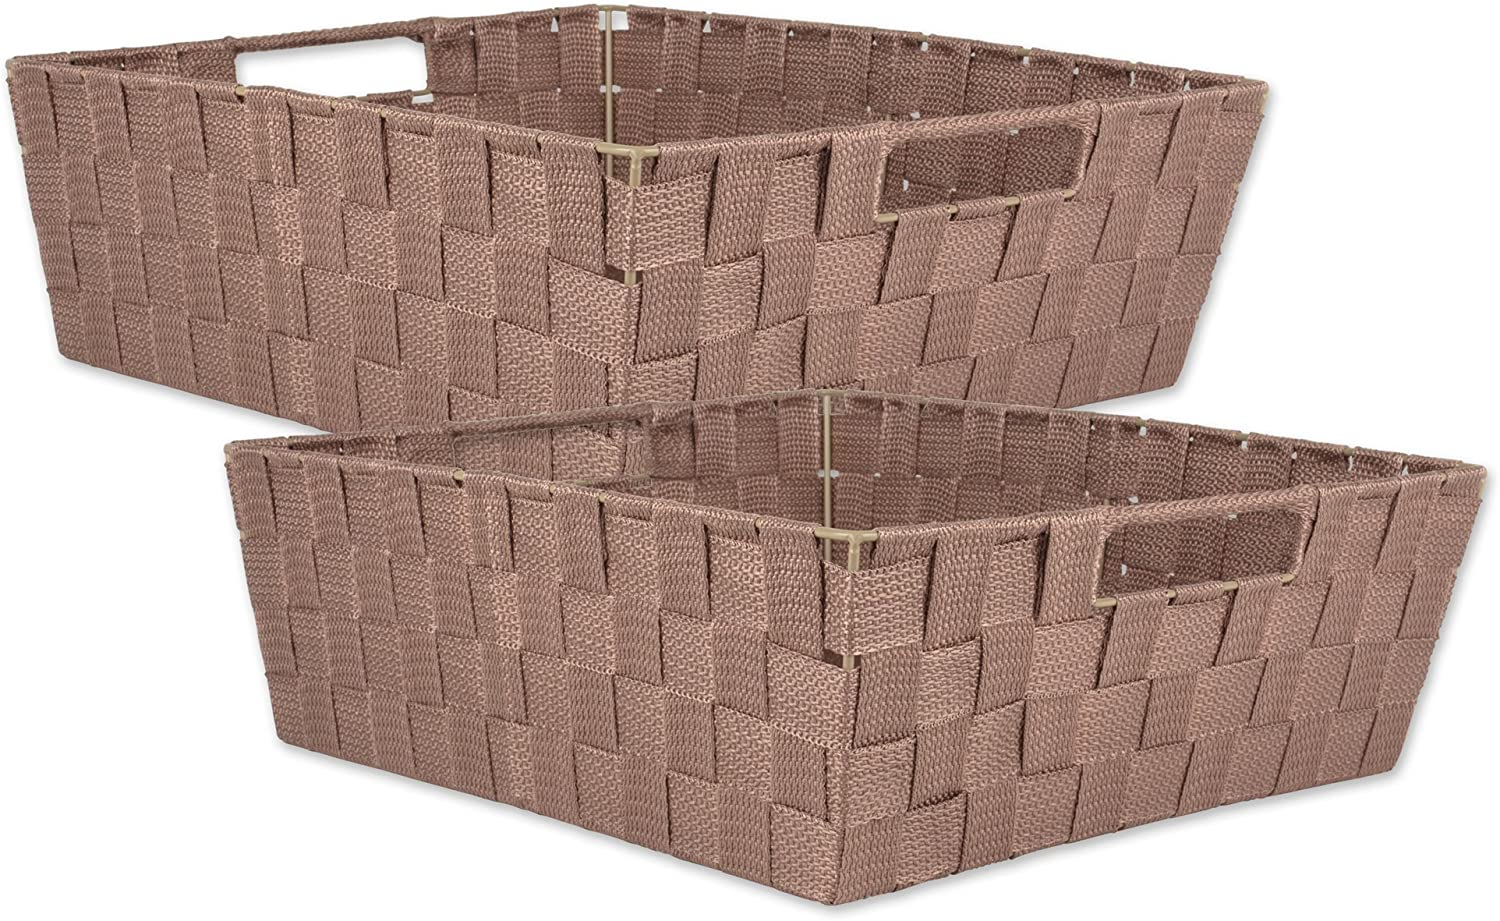 "DII Durable Trapezoid Woven Nylon Storage Bin or Basket for Organizing Your Home, Office, or Closets  (Tray - 13x15x5"") Taupe - Set of 2"